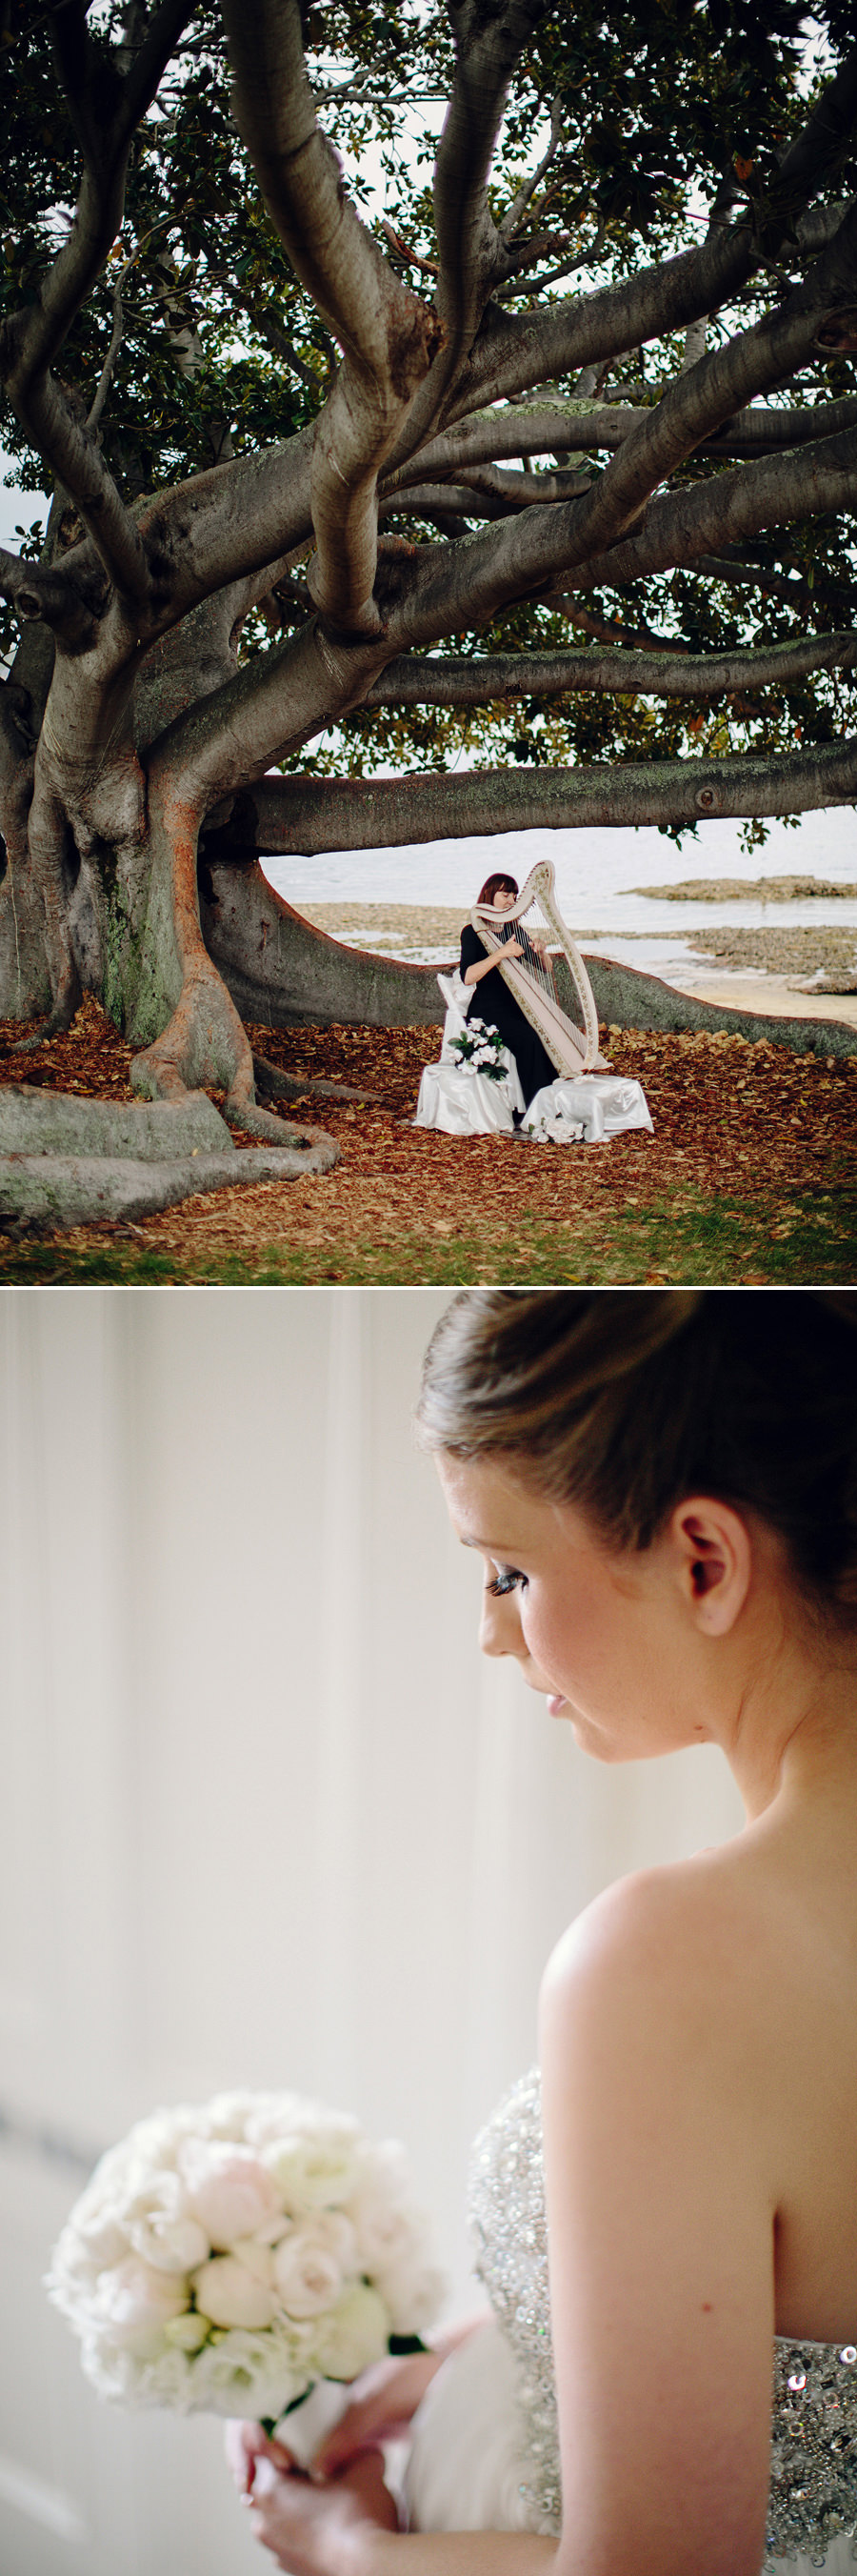 Watsons Bay Wedding Photographer: Harpist